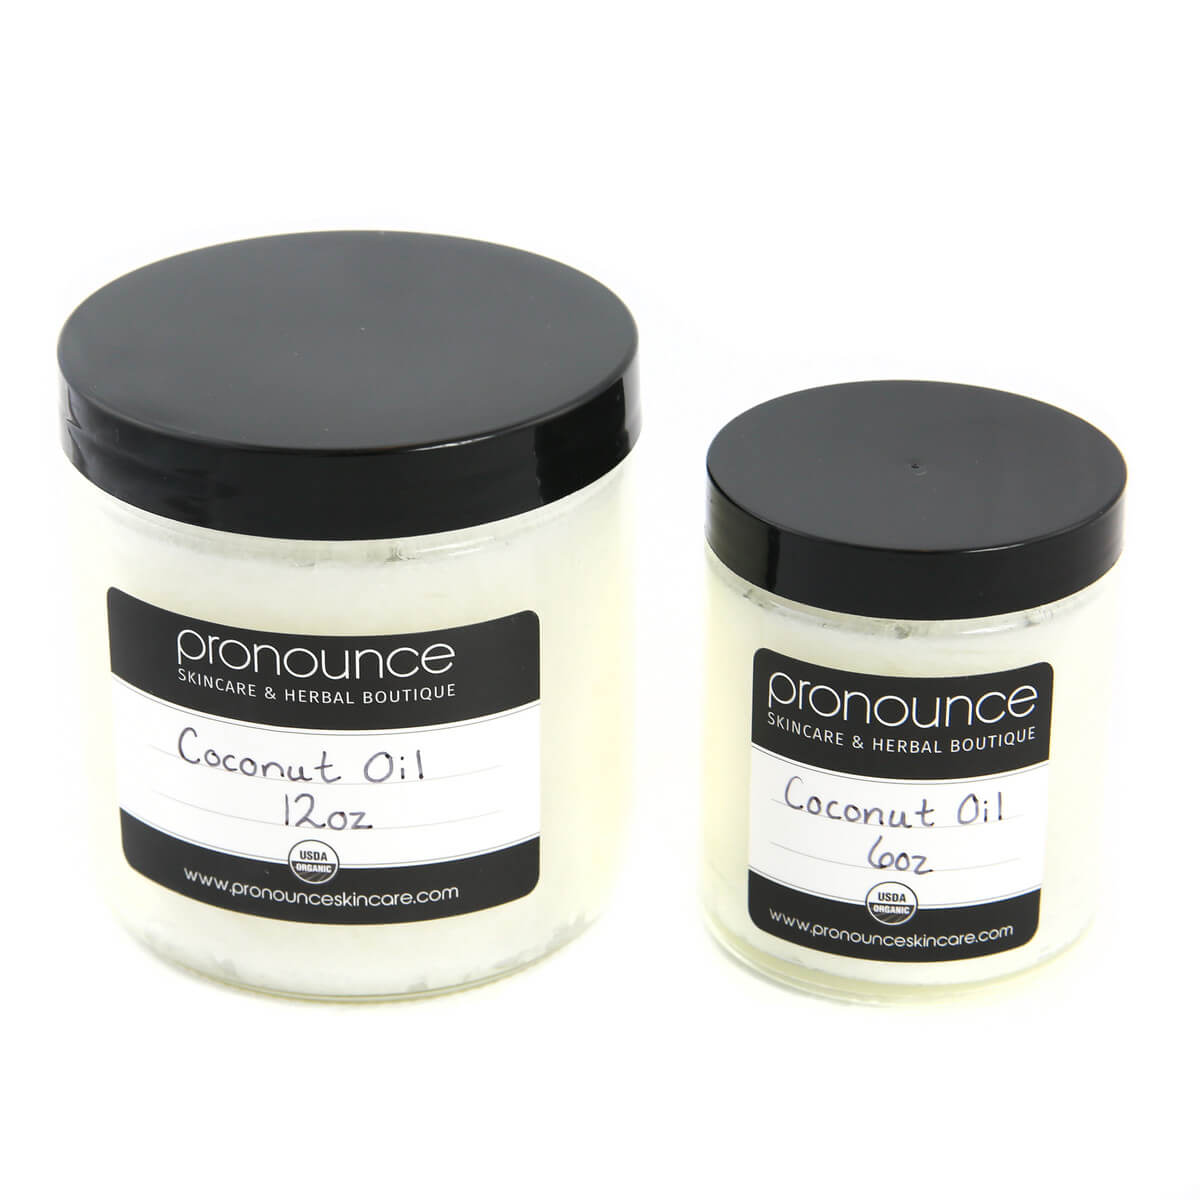 Certified Organic Coconut Oil 2 Sizes Pronounce Skincare & Herbal Boutique